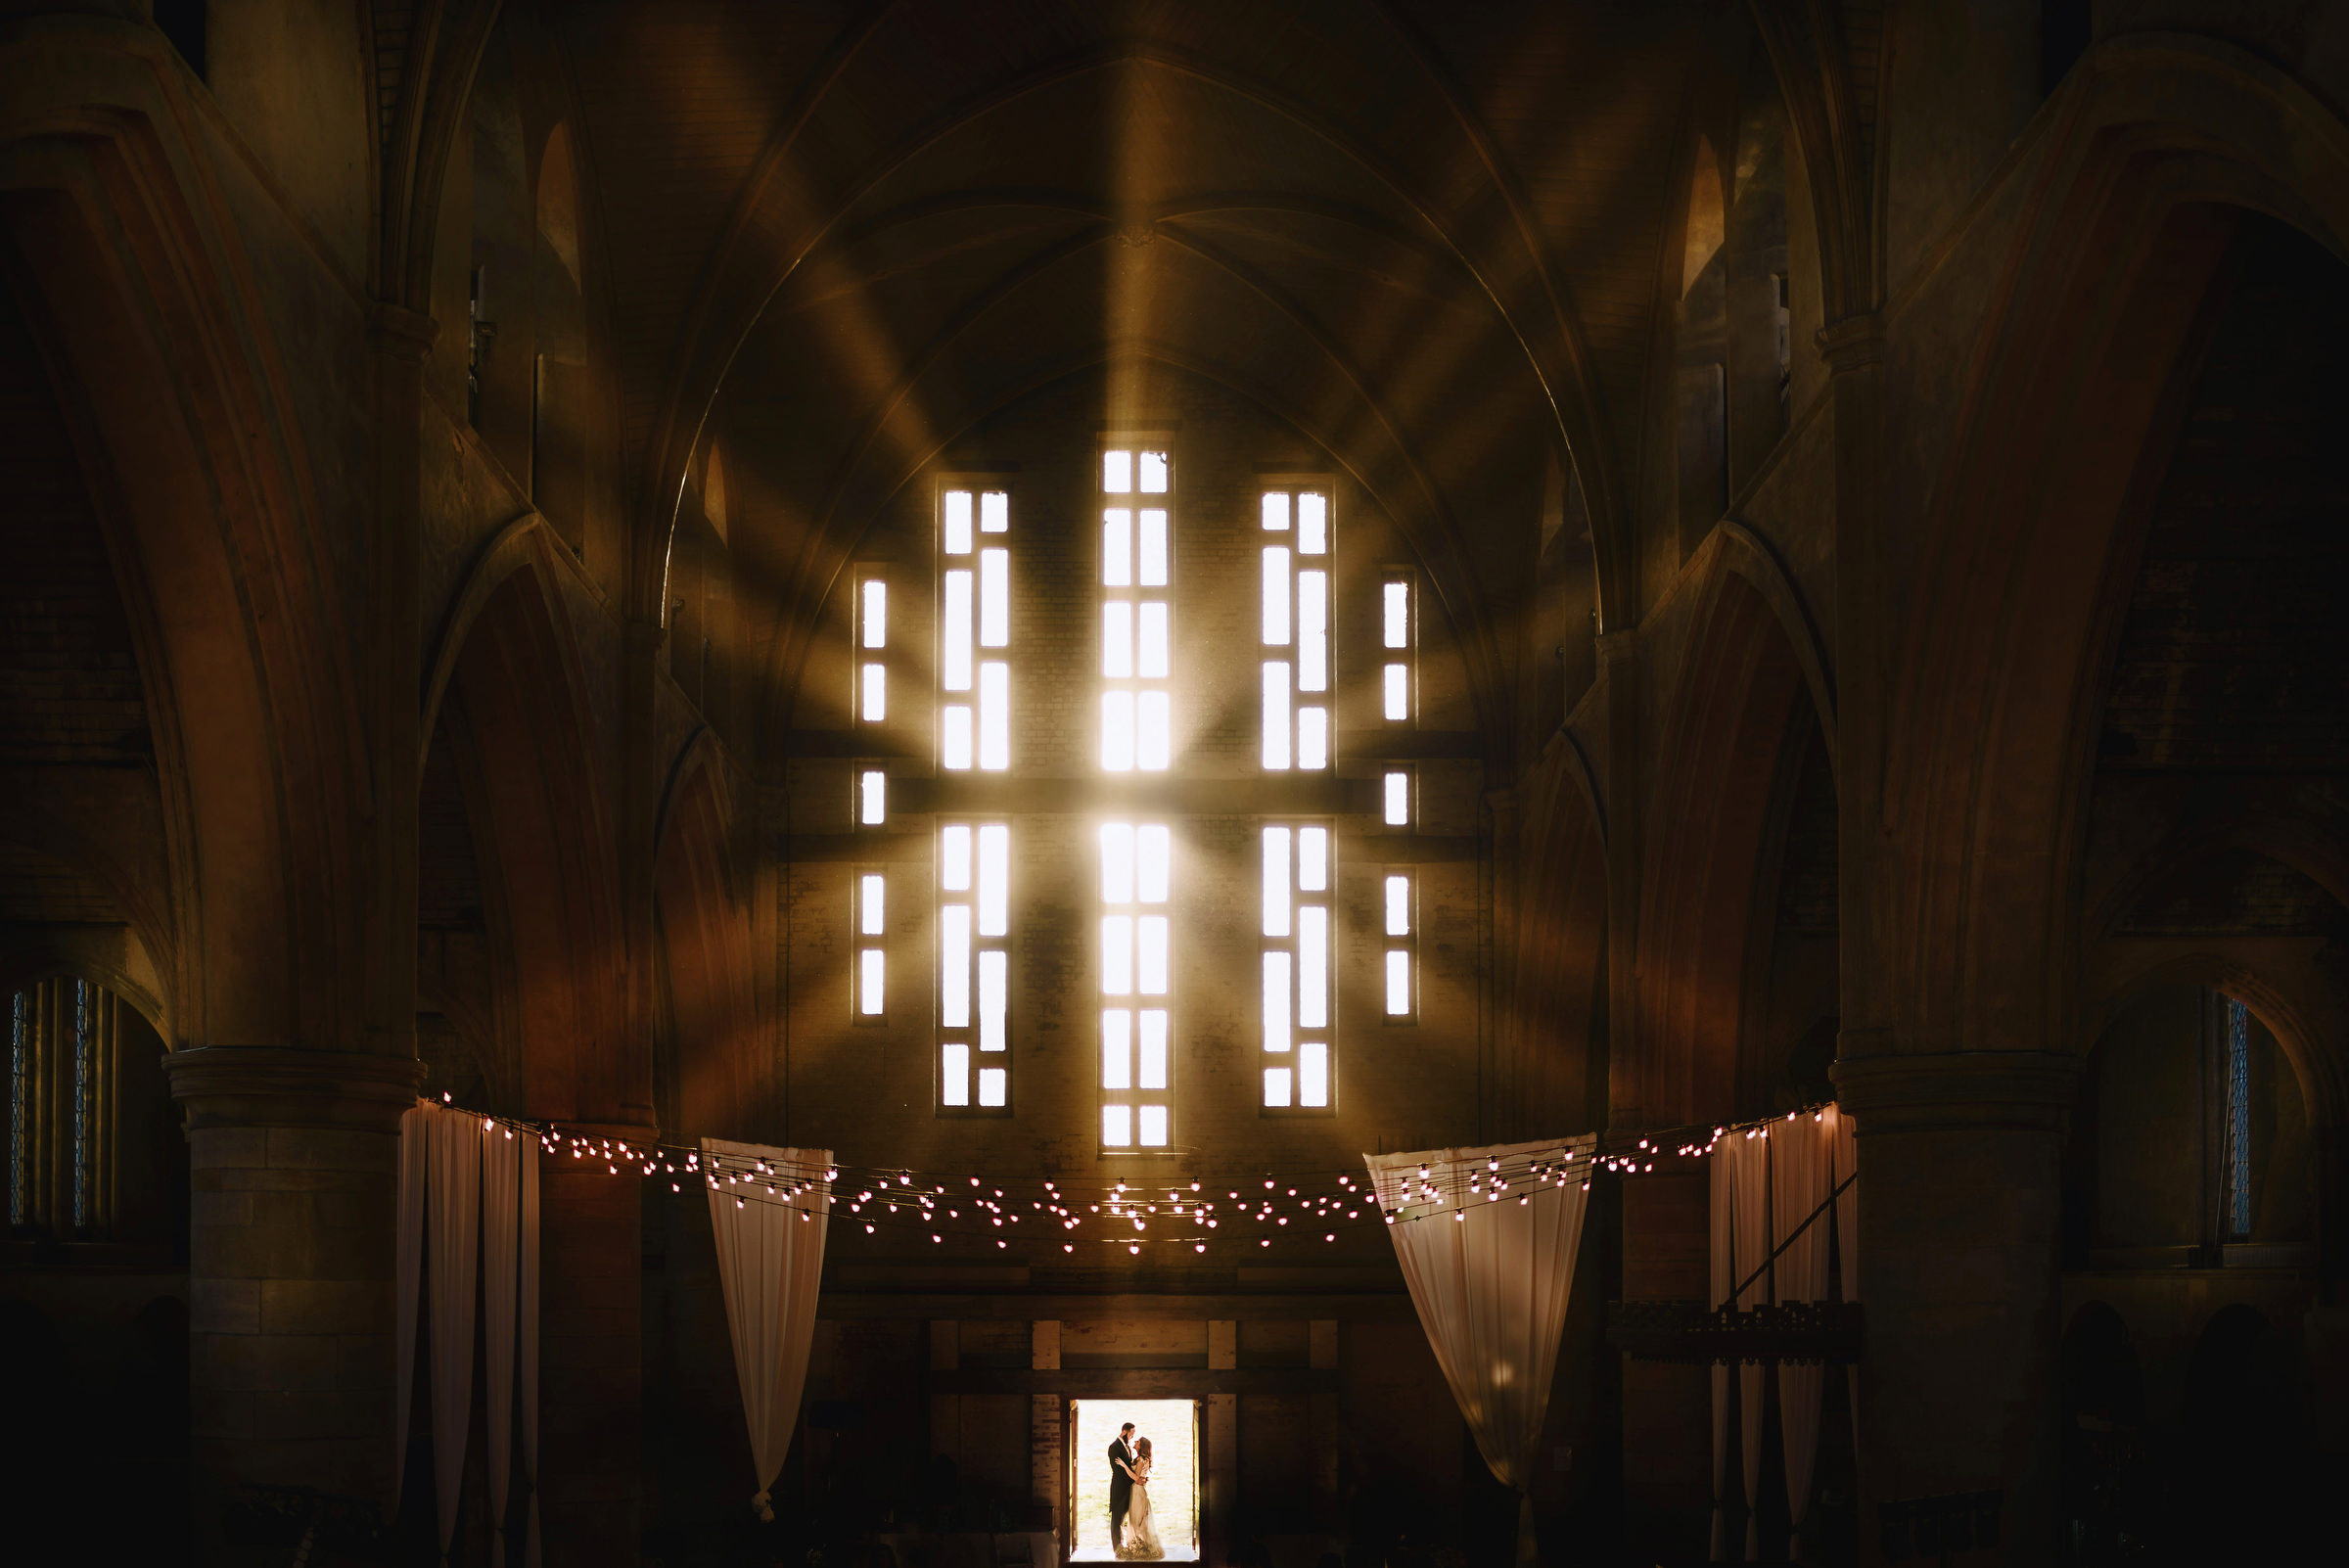 couple-portrait-at-church-entrance-with-light-rays-coming-in-andy-gaines-photography